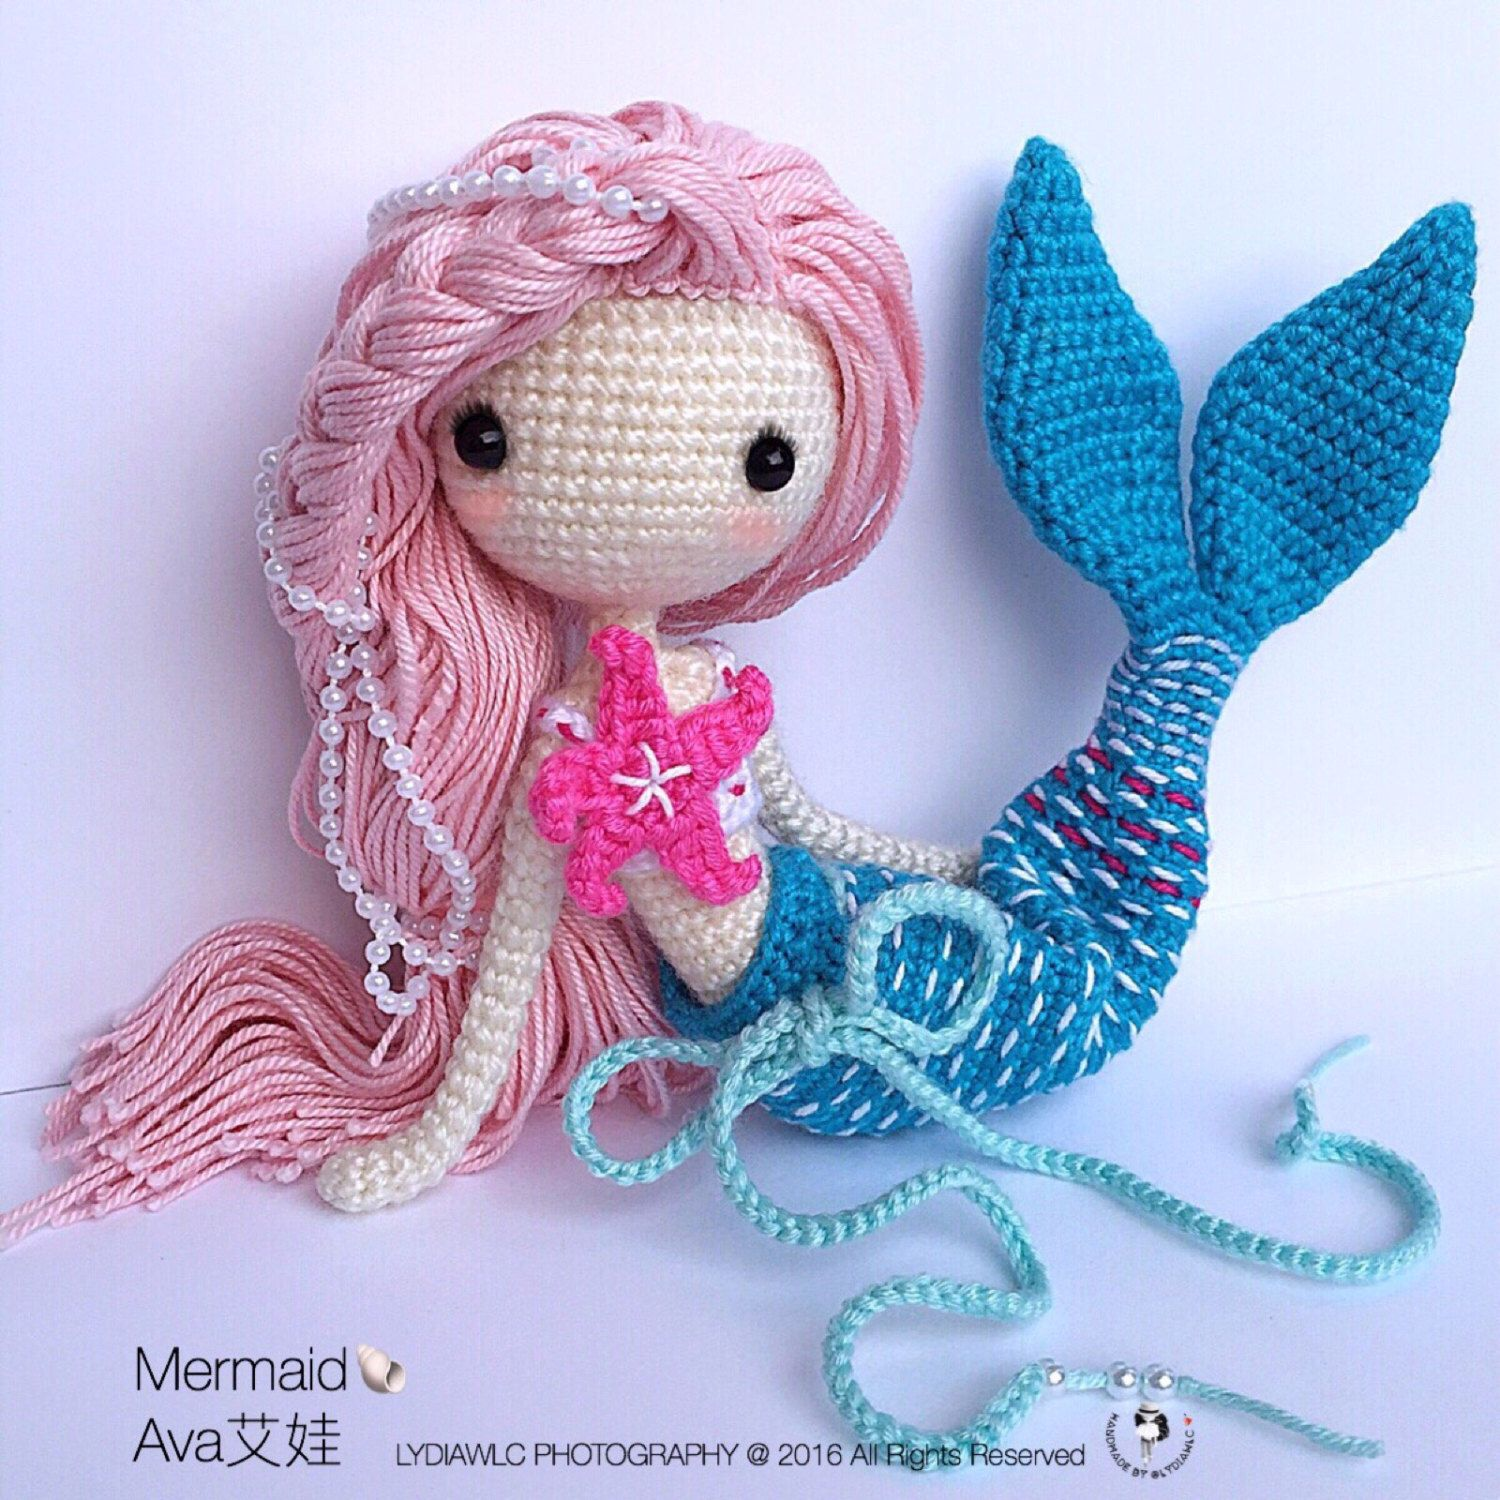 English: Crochet Doll Pattern-Mermaid-Ava艾娃. (A crochet doll with ...